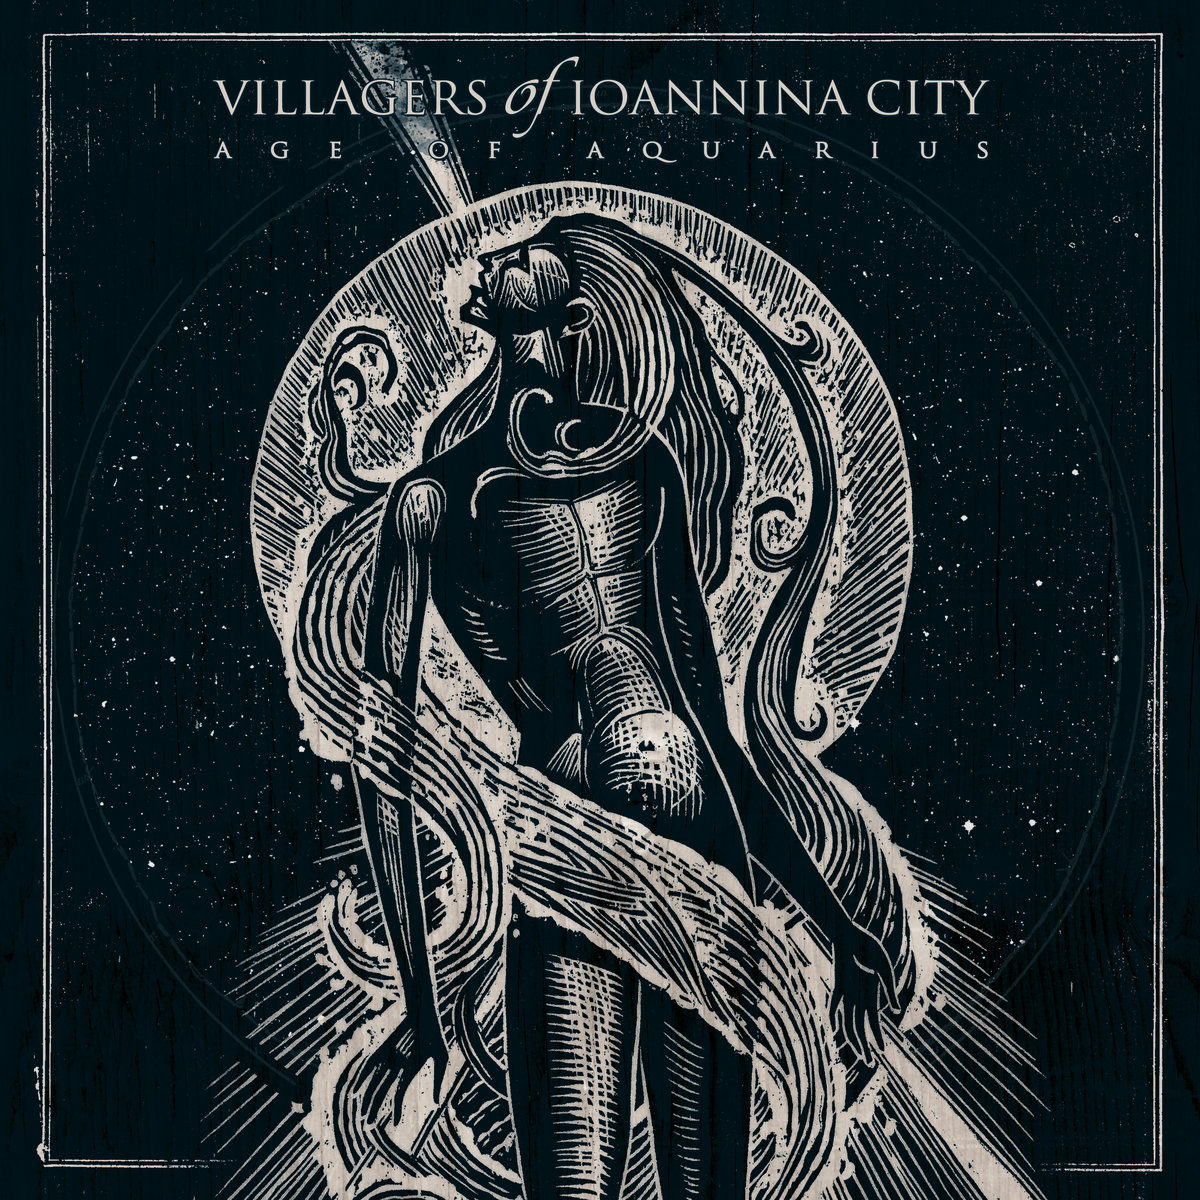 Villagers of Ioannina City: Age of Aquarius